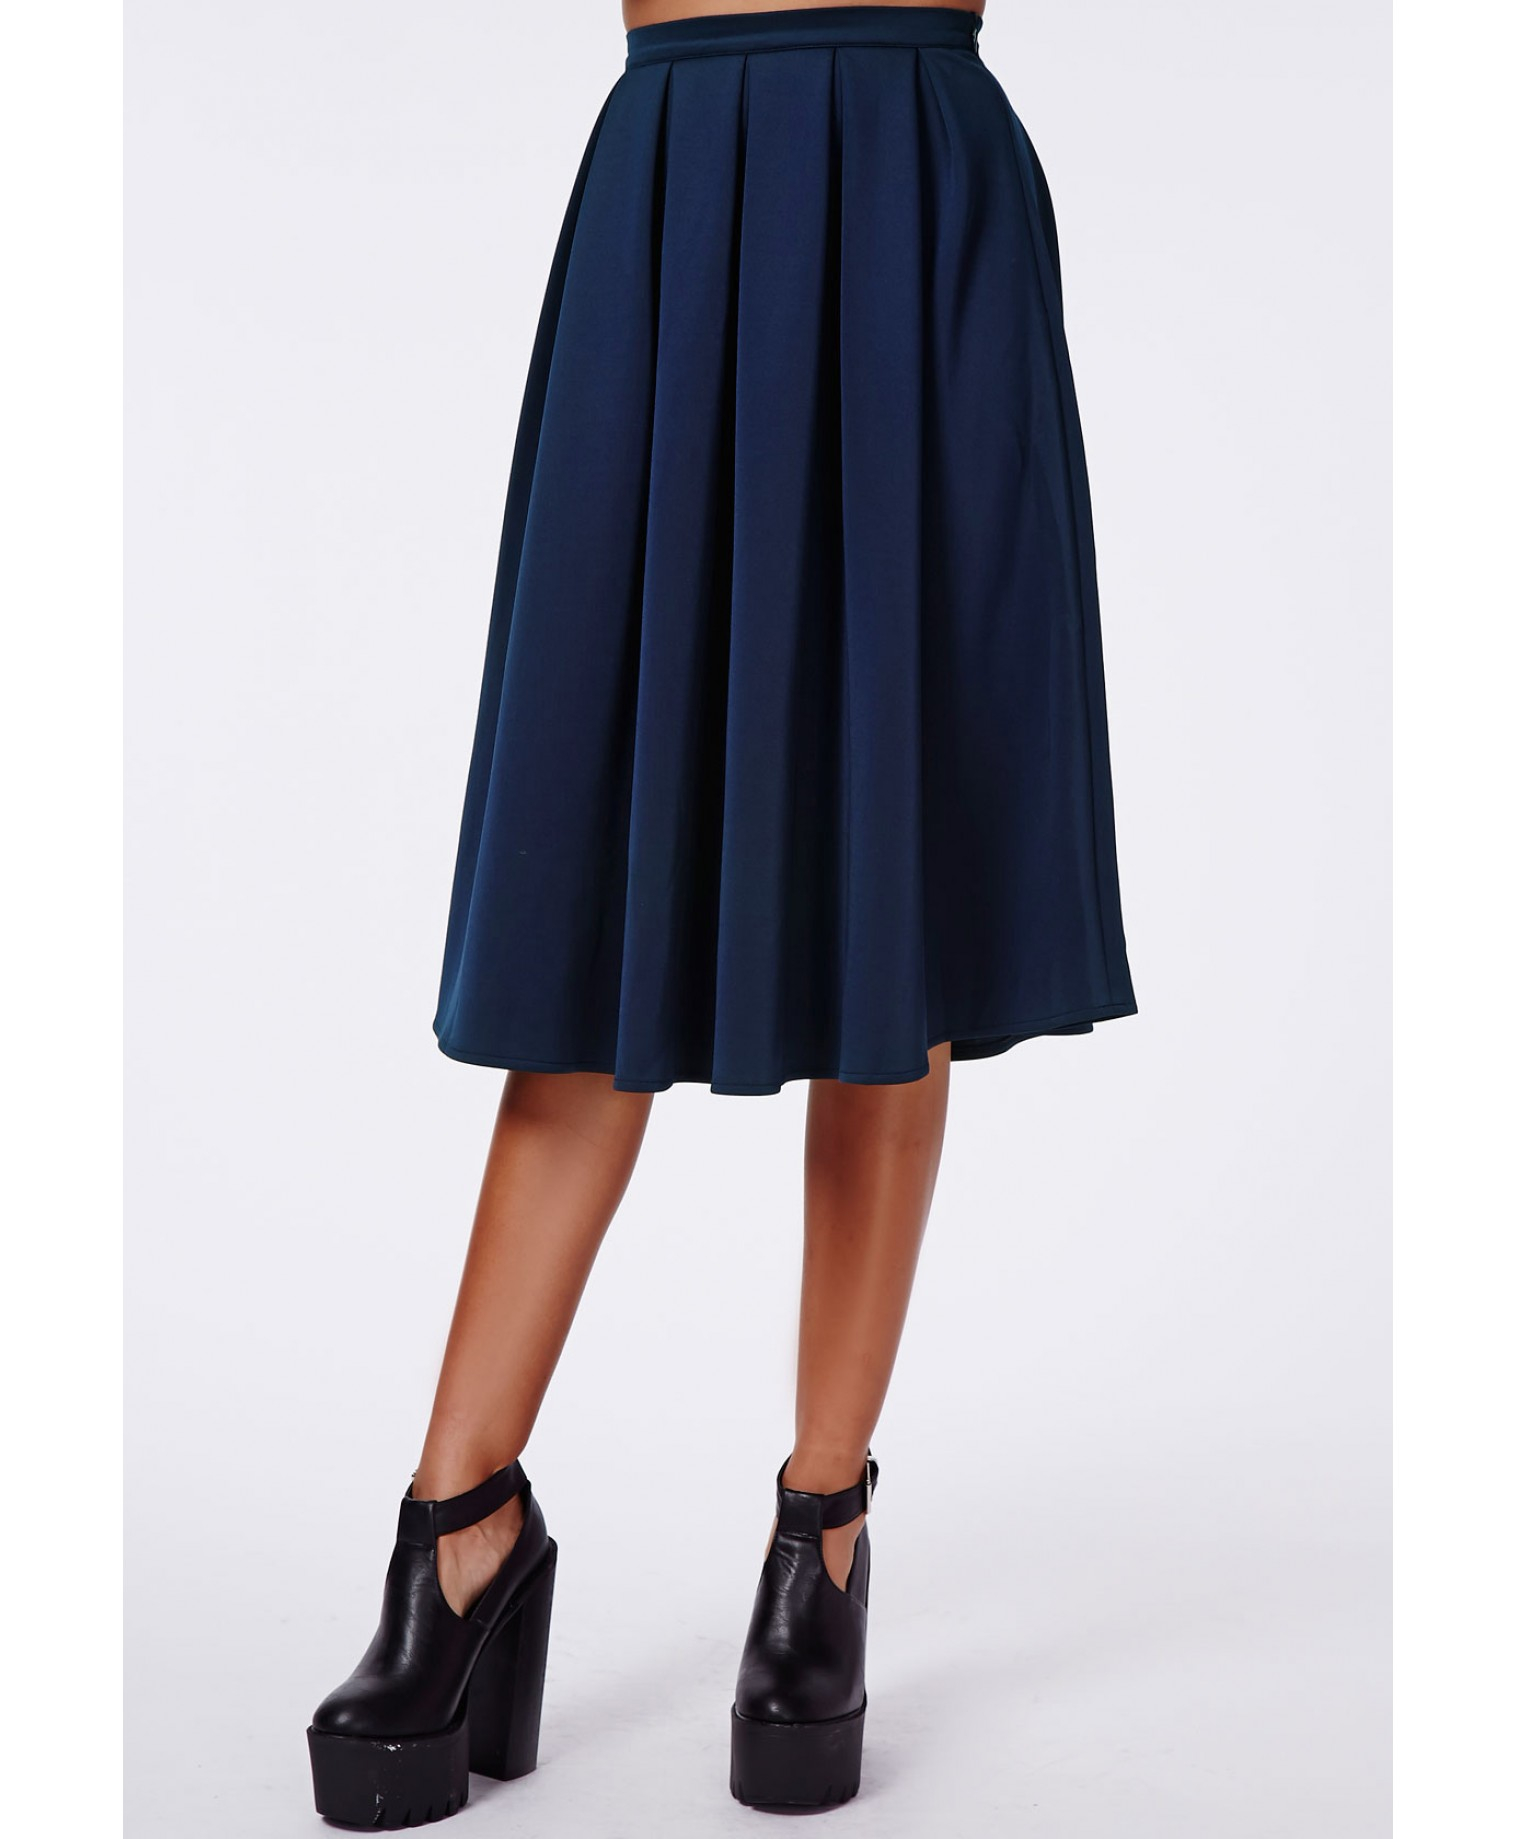 missguided auberta pleated midi skirt navy in blue navy